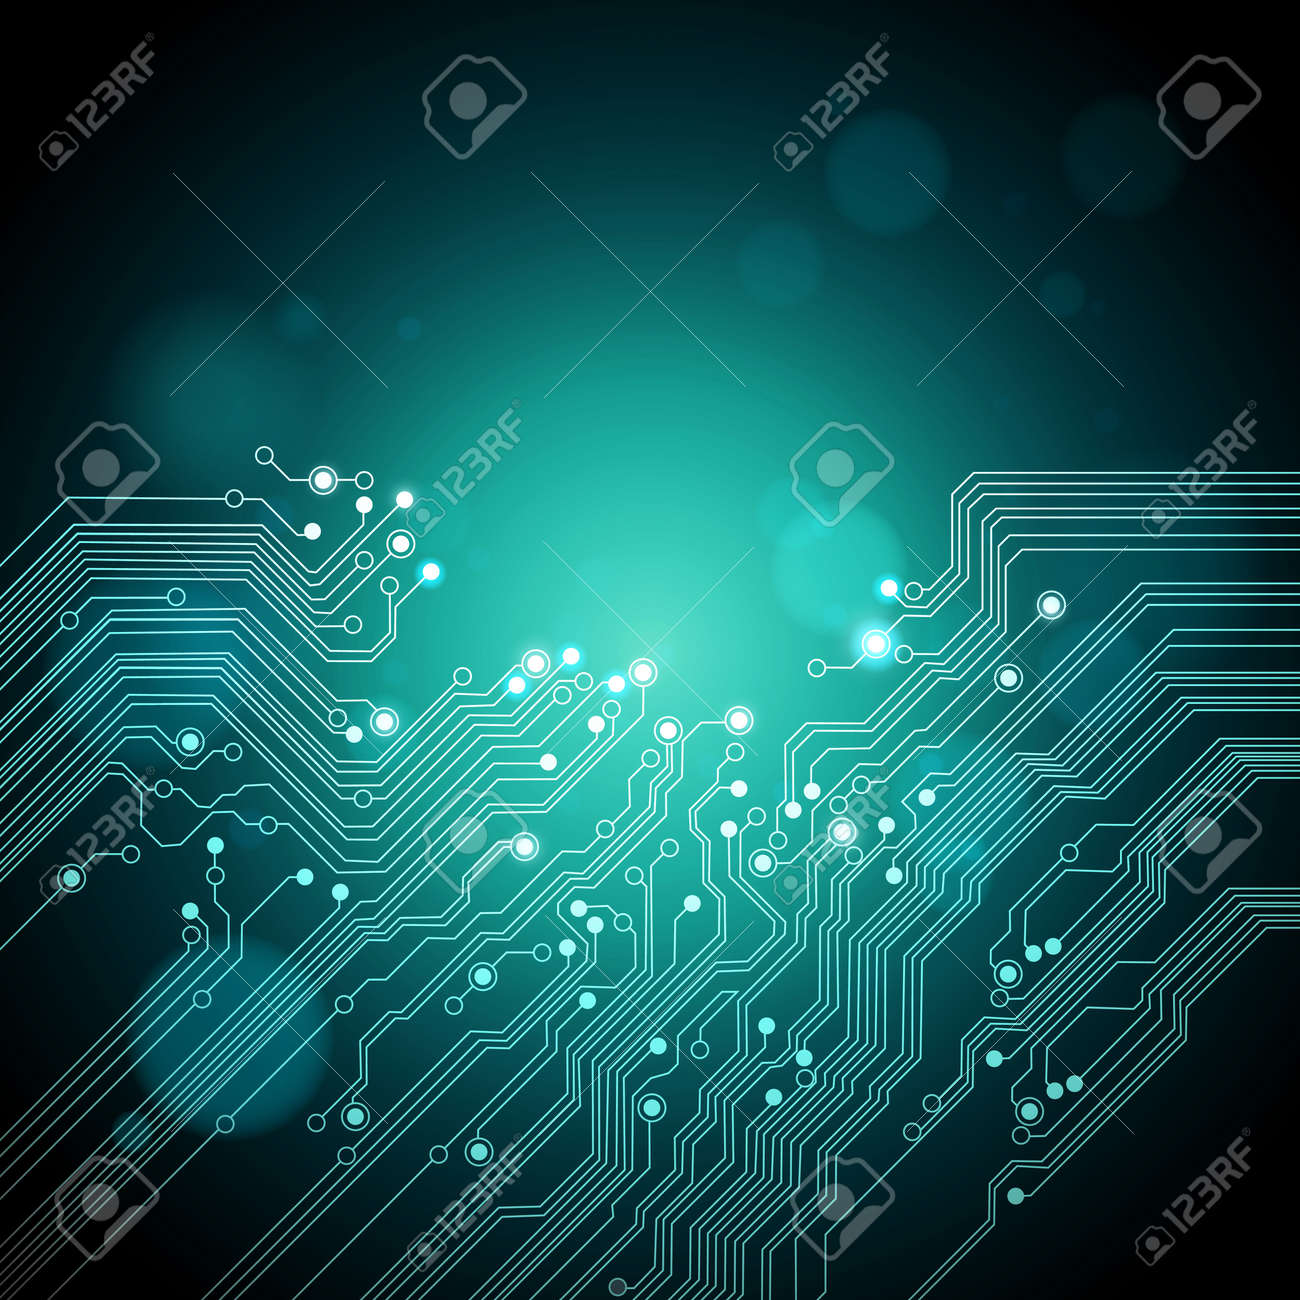 abstract technology background - dark green color - vector - 11578473